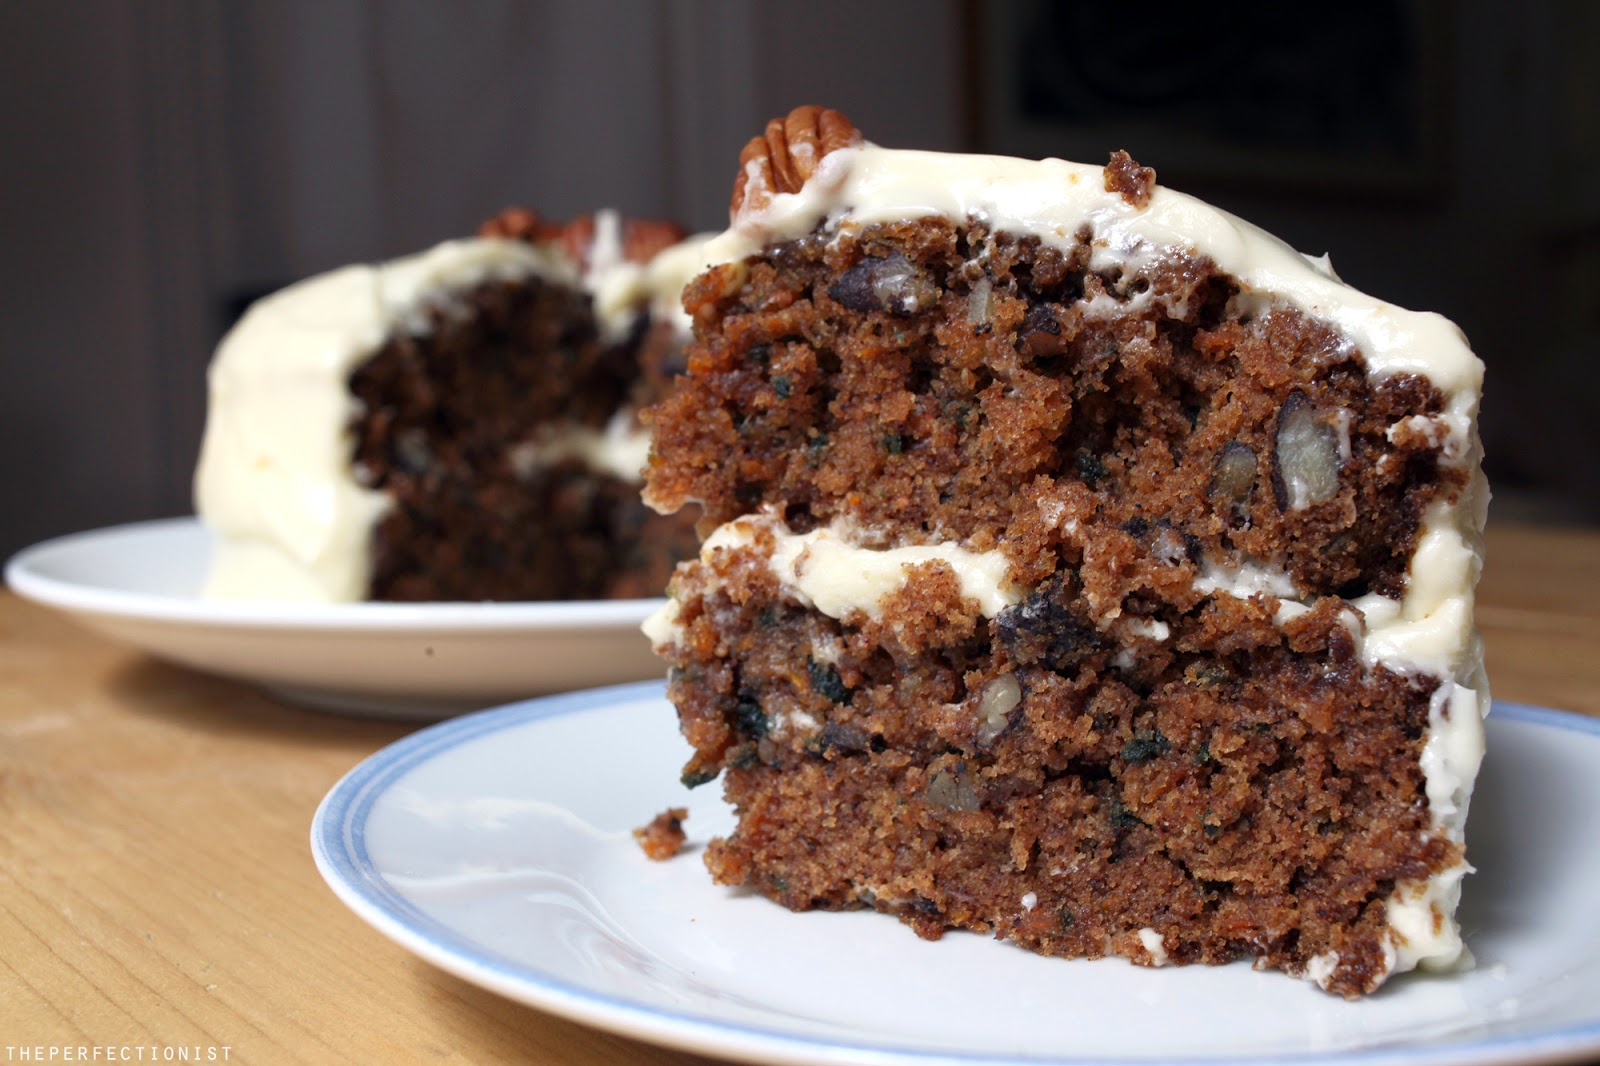 The Perfectionist: Carrot and Pecan Cake with Cream Cheese Frosting